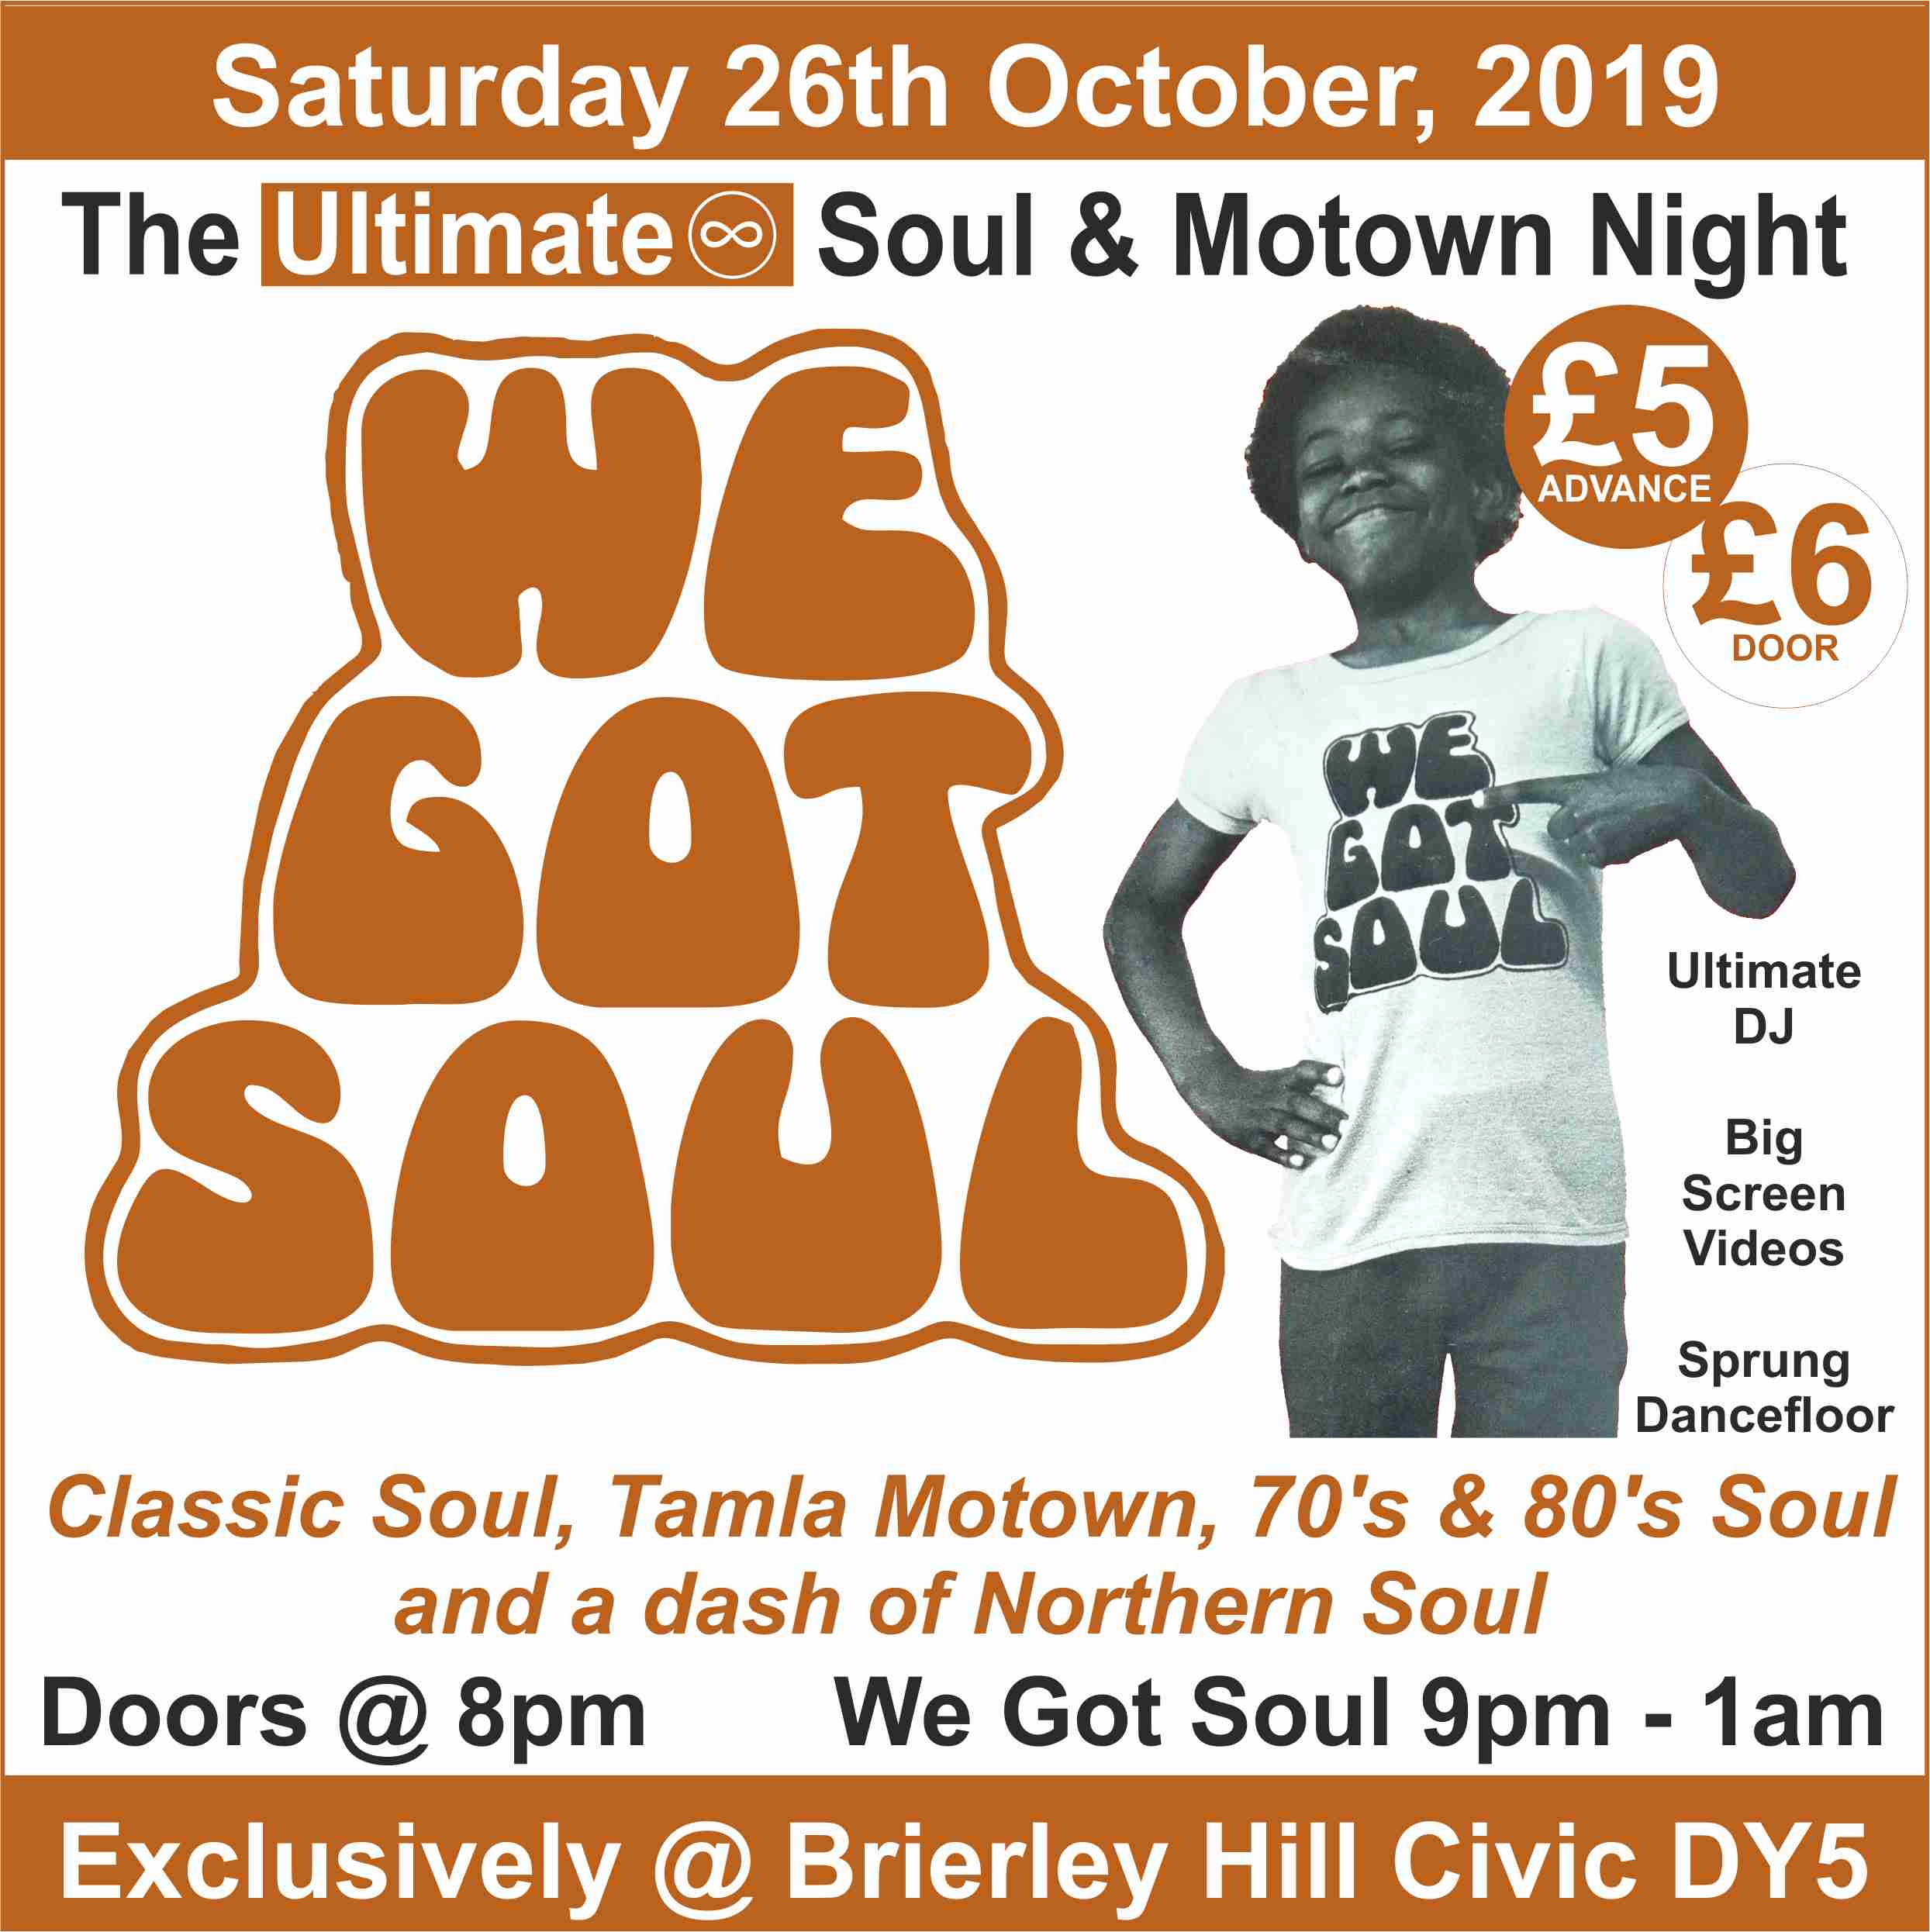 We Got Soul - The Ultimate Soul & Motown Night at Brierley Hill Civic Saturday 26th October 2019 banner image